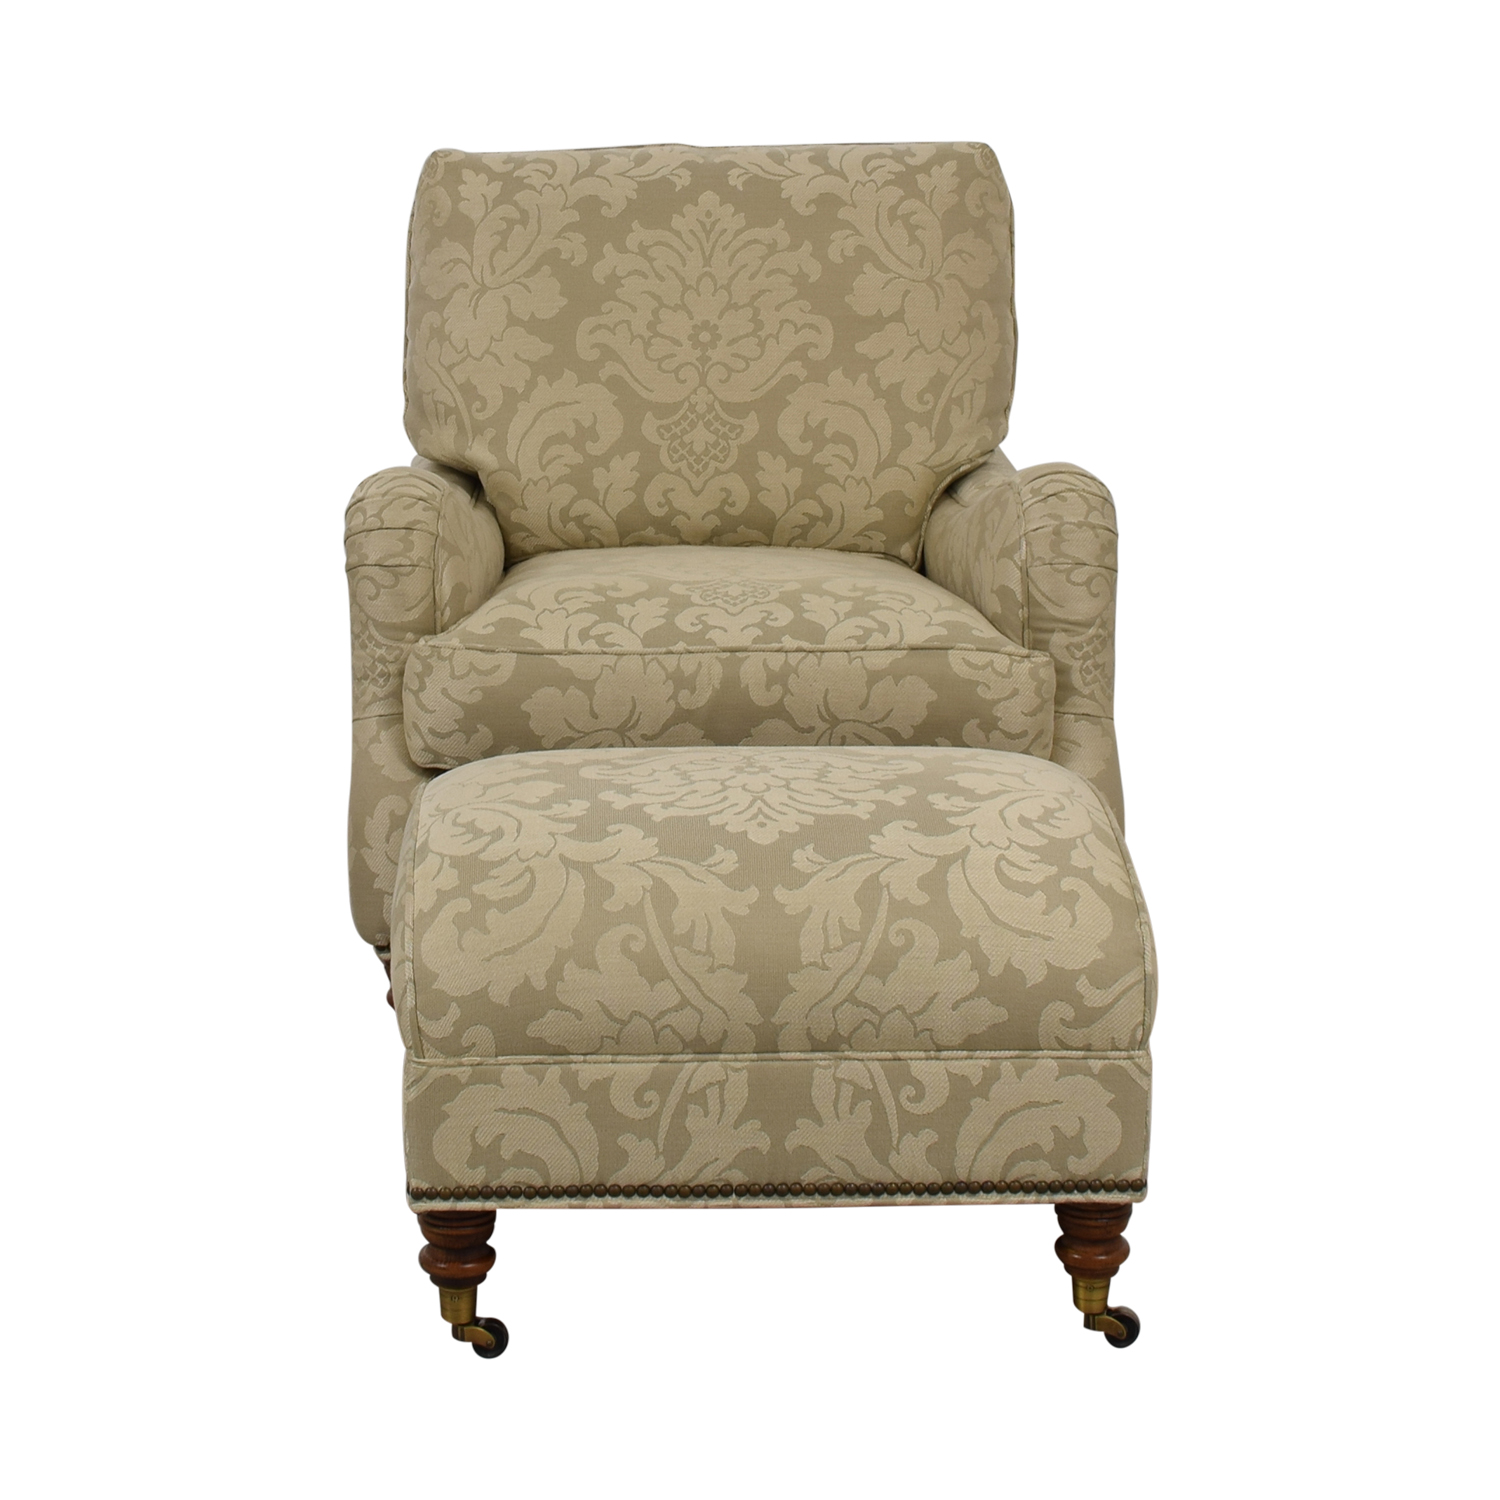 Vanguard Vanguard Beige Upholstered Accent Chair with Ottoman price